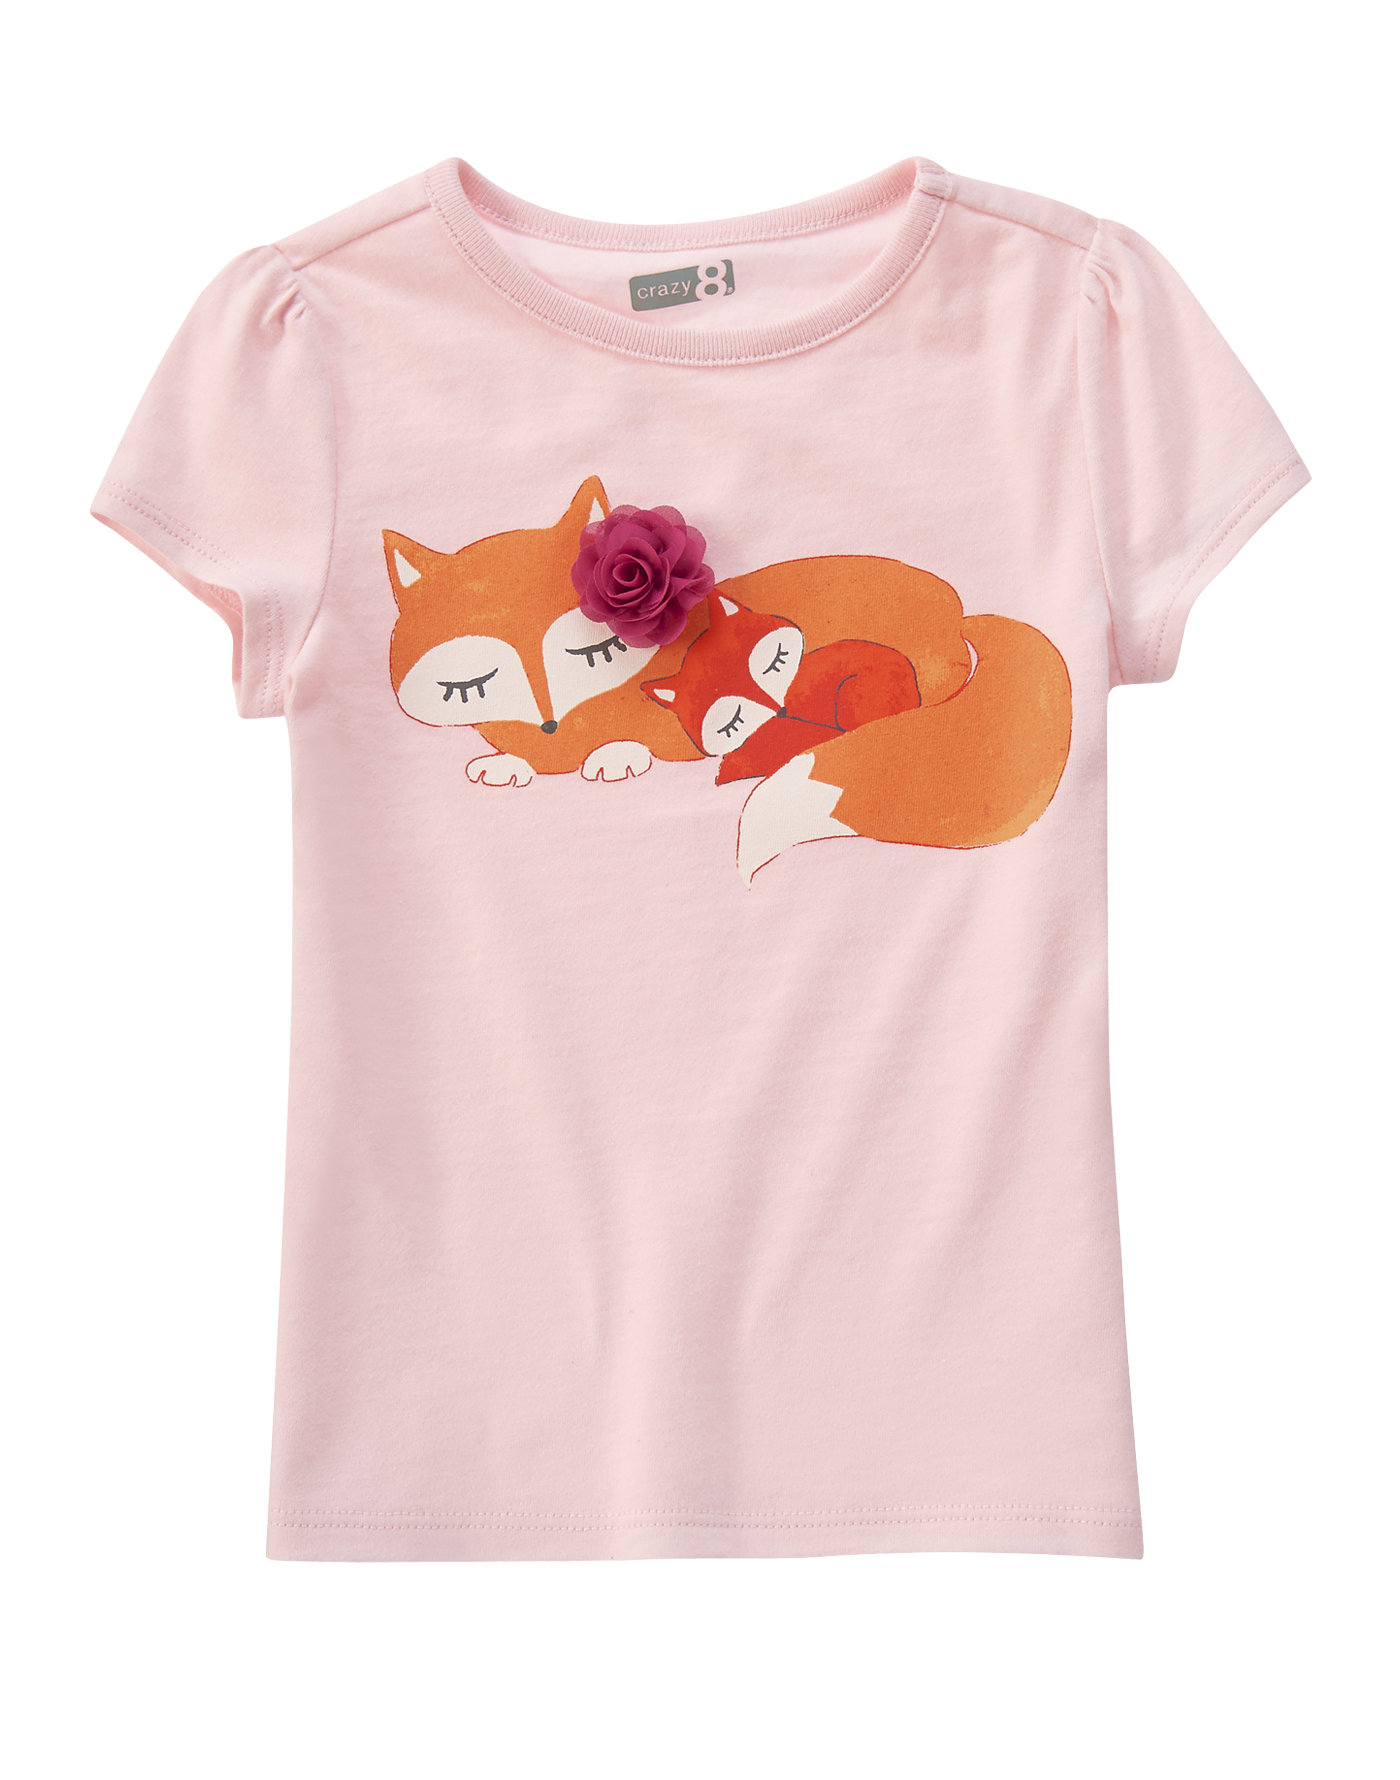 Fun Fox Clothes For Girls From Gymboree